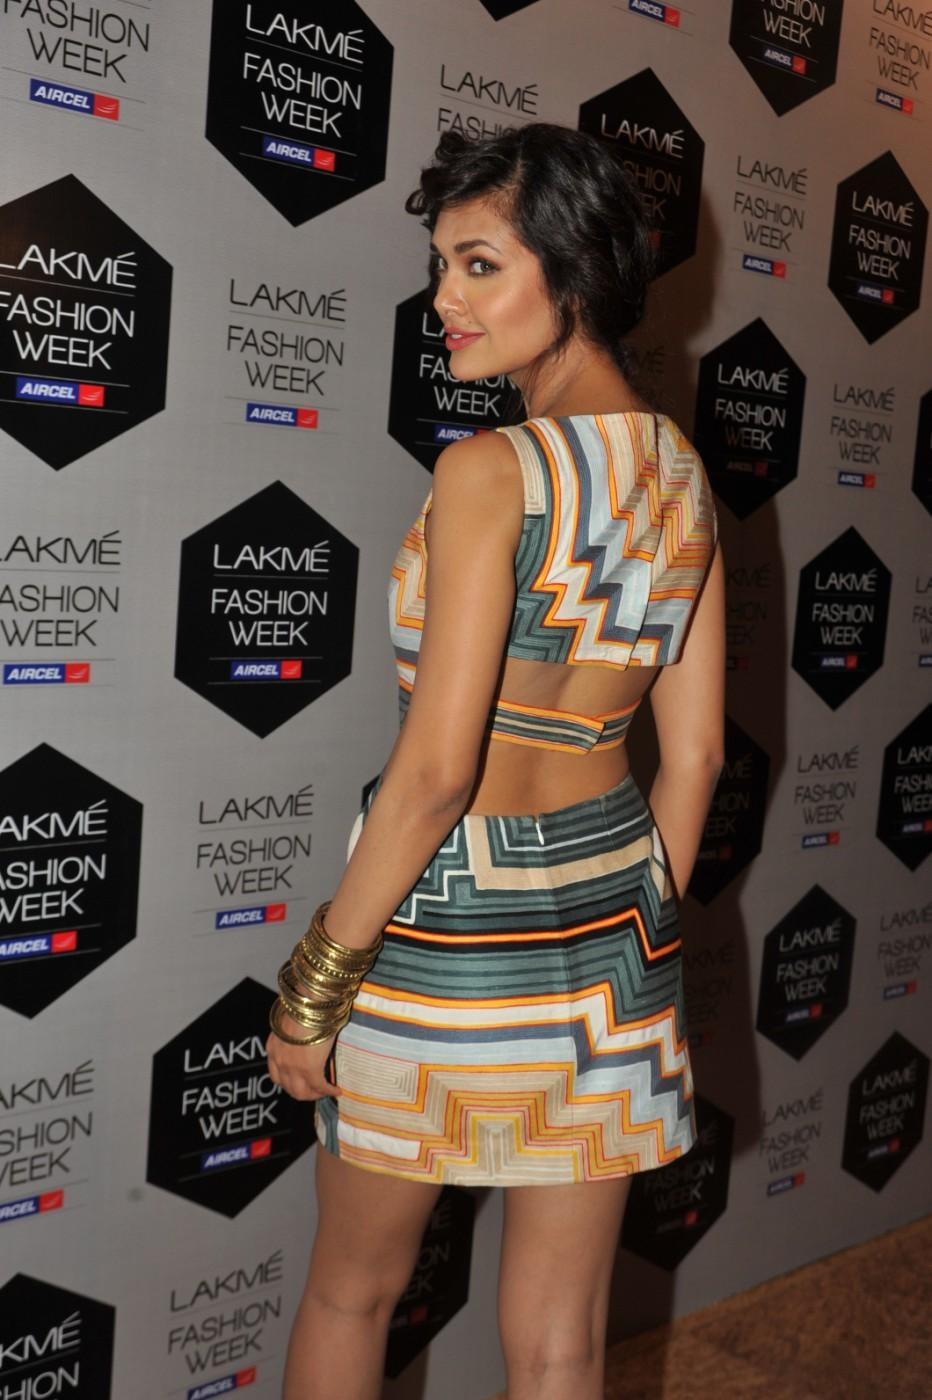 Lakme Fashion Week 2012 Day 5 Photo - Esha Gupta Show Her Sexy Back